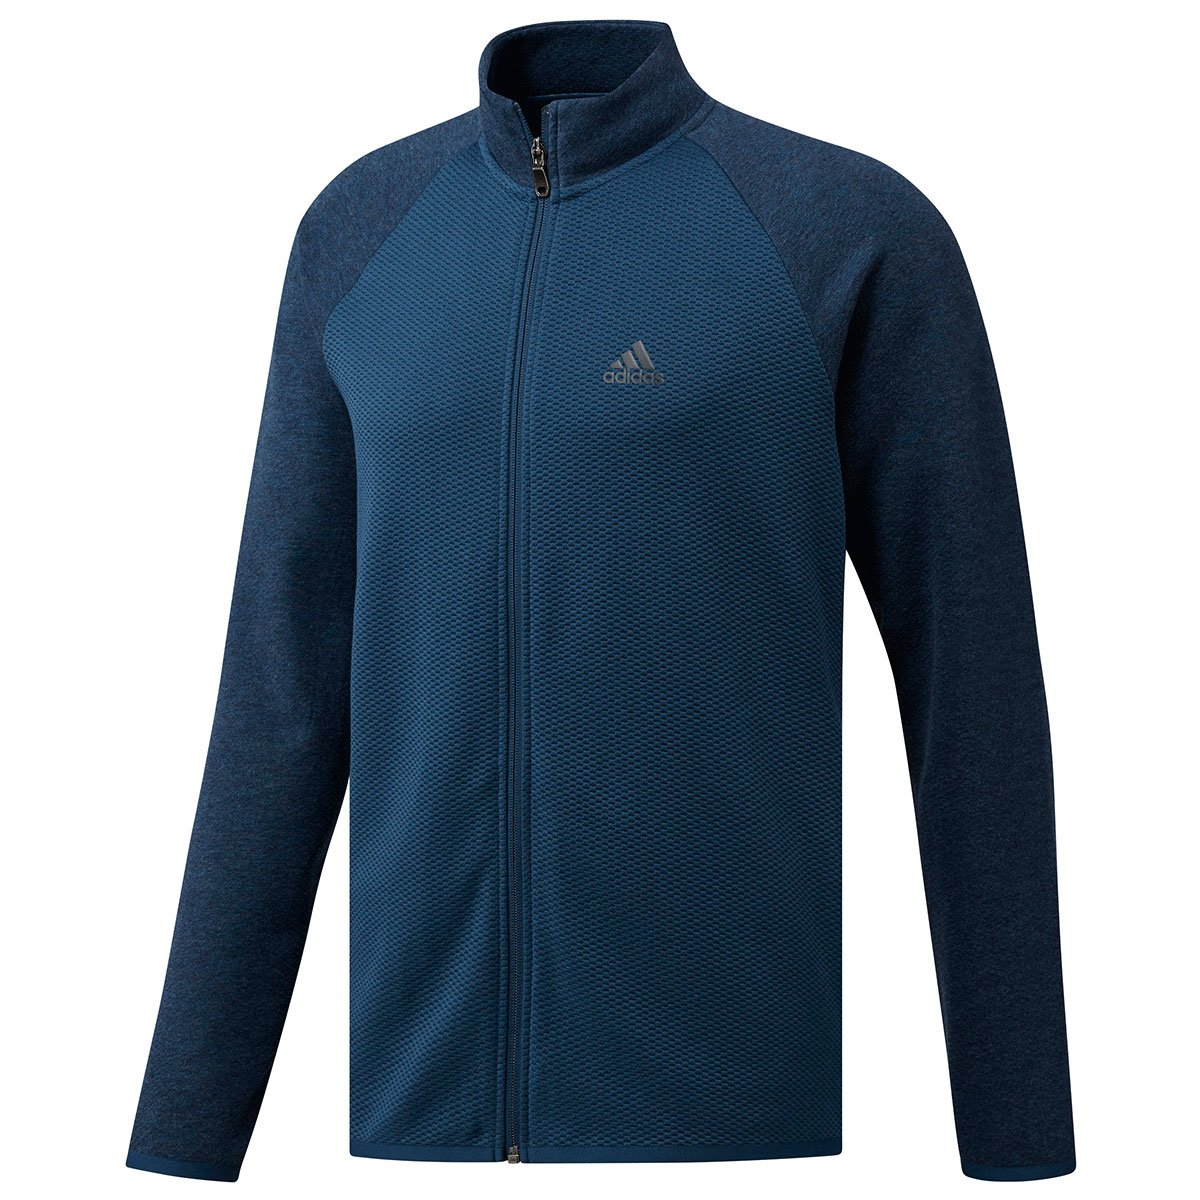 adidas Men's Climawarm Sweater Zip Track Jacket